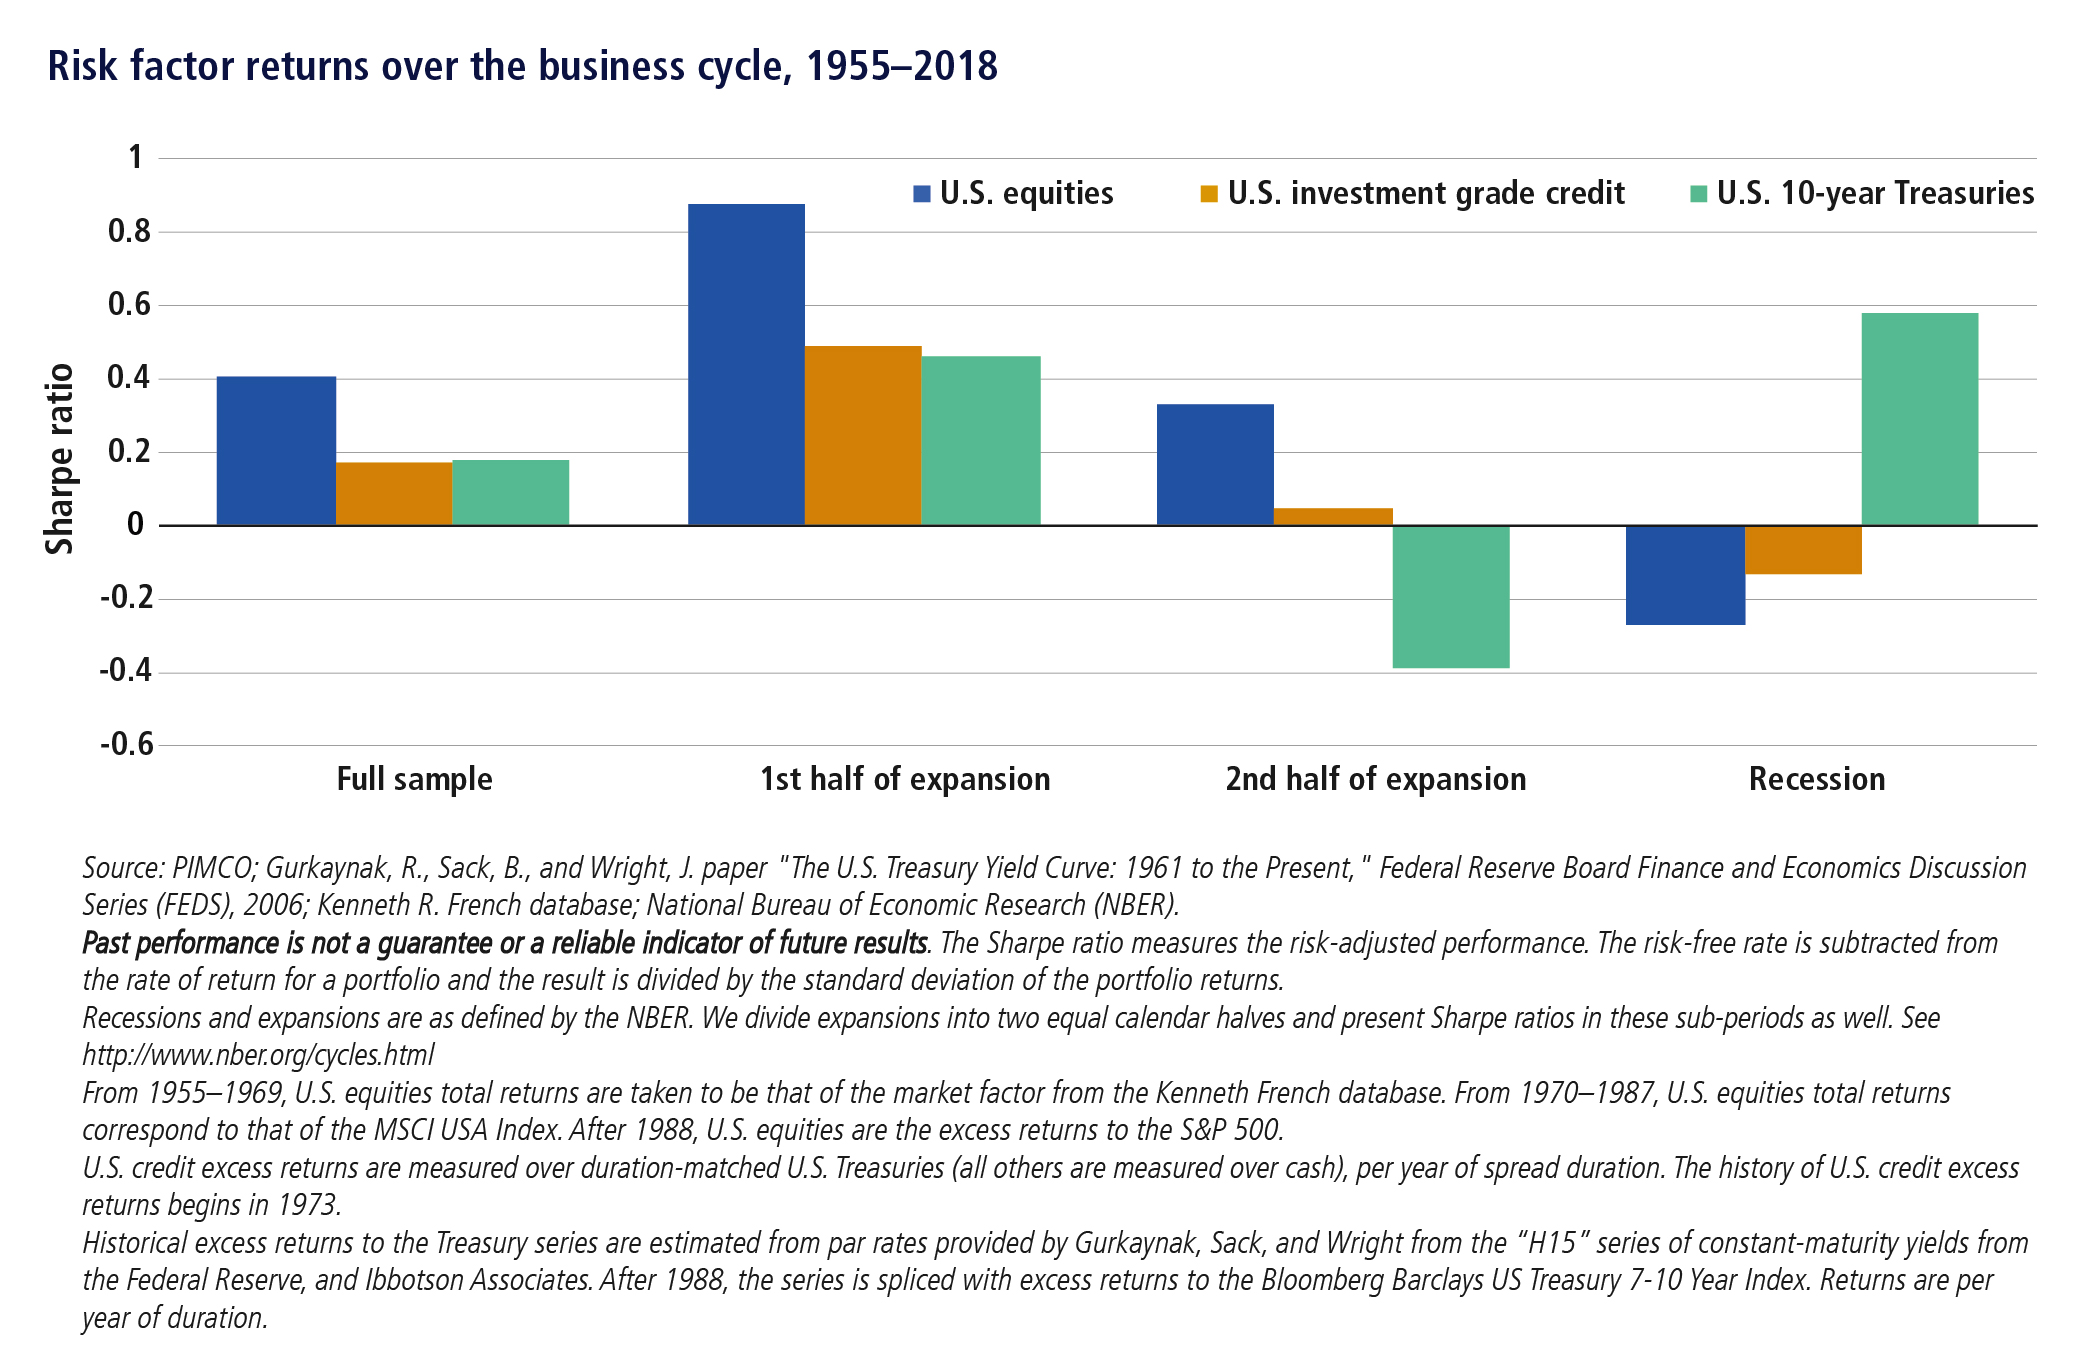 Risk factor returns over the business cycle 1995-2018